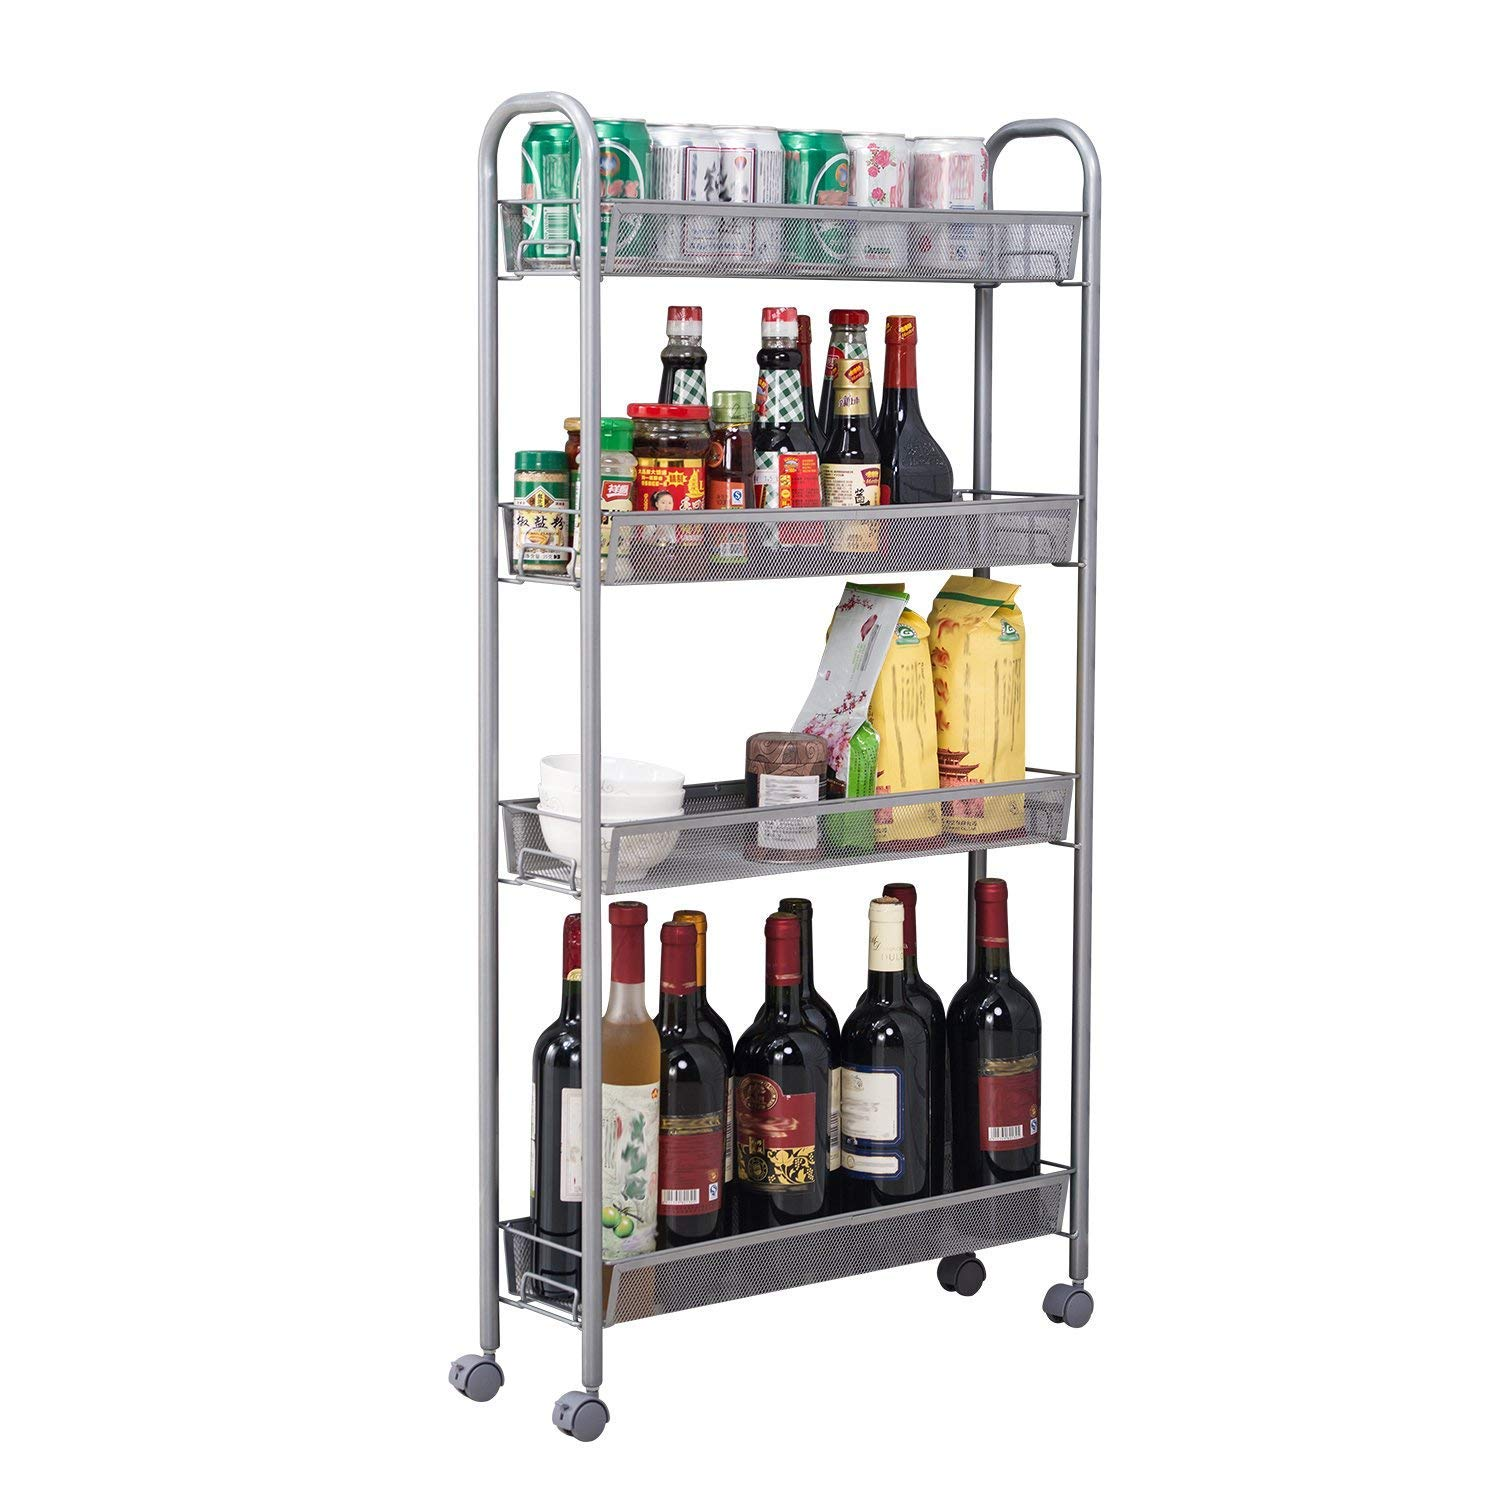 dalilylime 4-Tier Removable Storage Cart, Gap Kitchen Slim Slide Out Storage Tower Rack with Wheels, Cupboard with Casters (Silver, 4 Layers-420s) by dalilylime